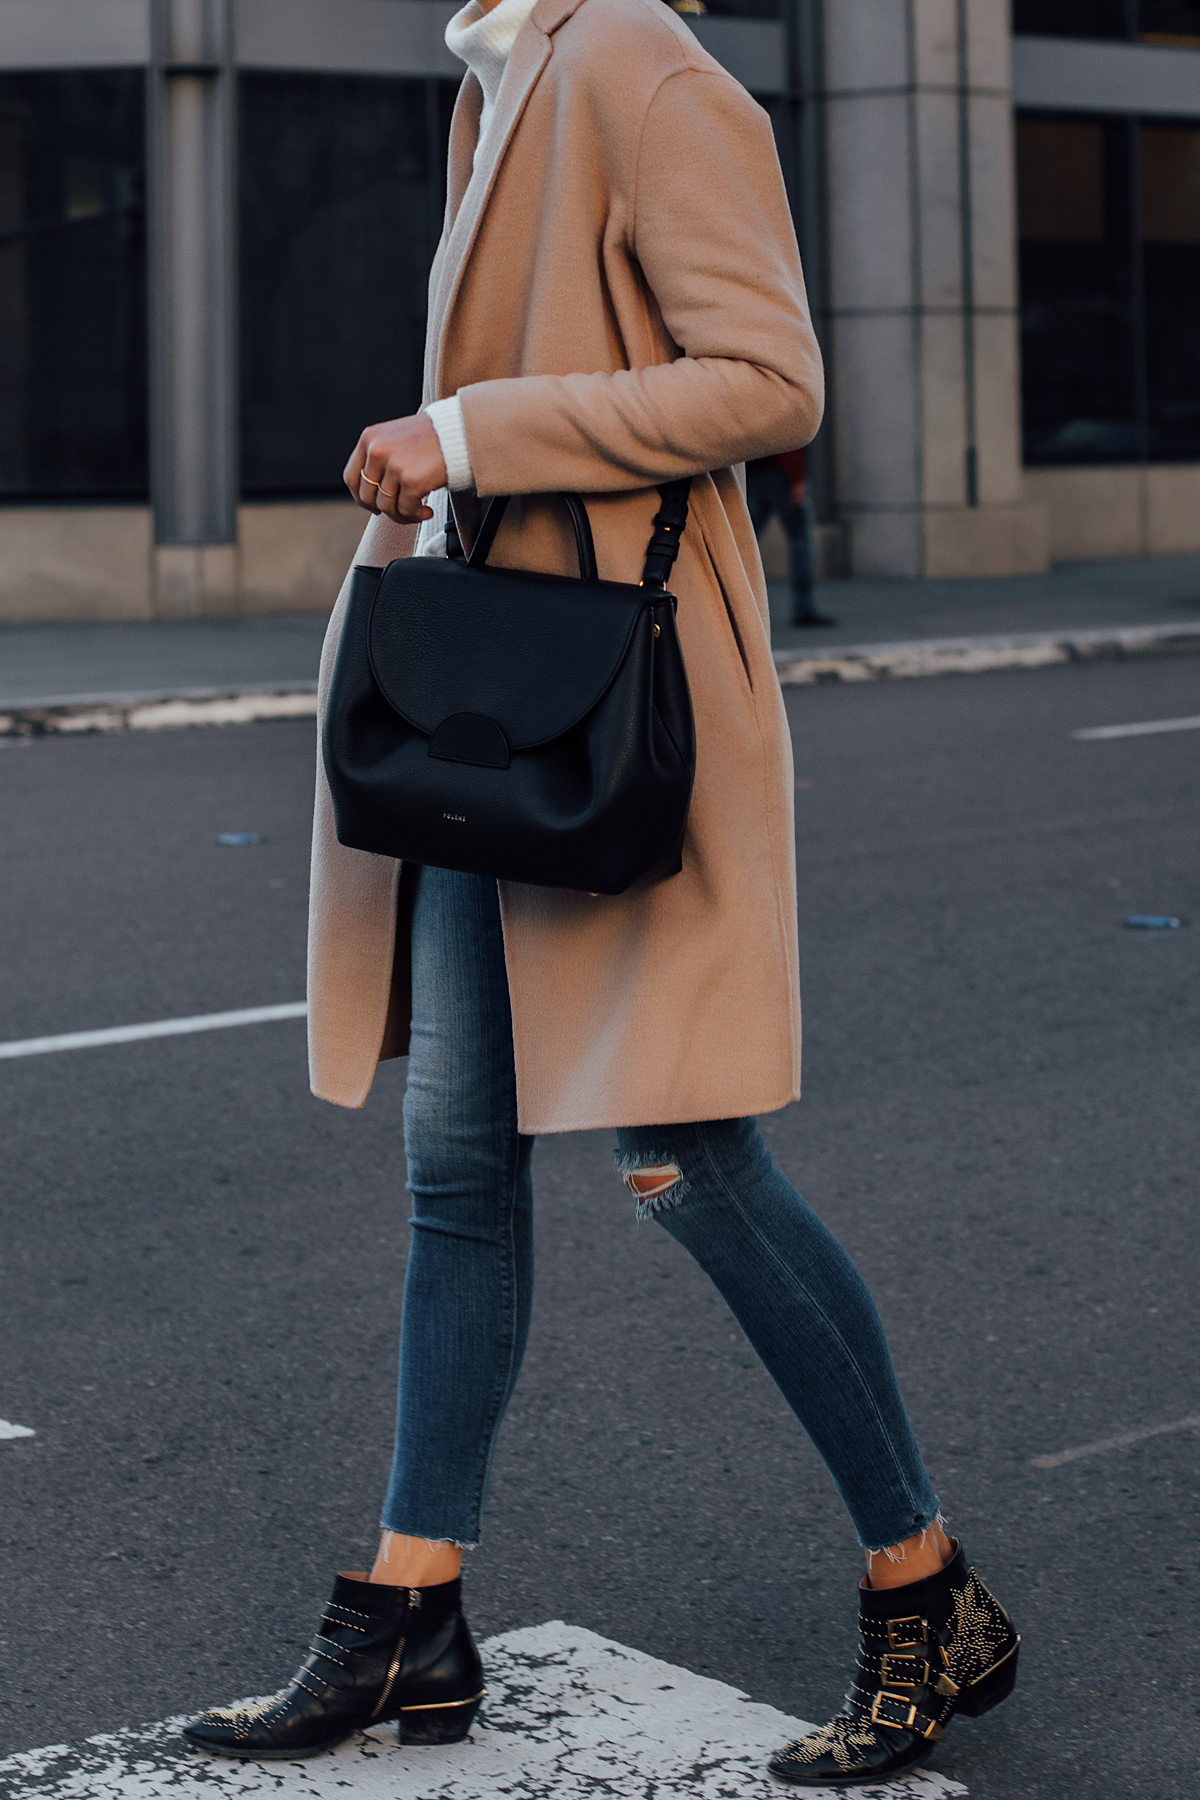 Blonde Woman Wearing AllSaints Camel Coat Denim Skinny Jeans Chloe Susanna Booties Polene Black Handbag Fashion Jackson San Diego Fashion Blogger Street Style